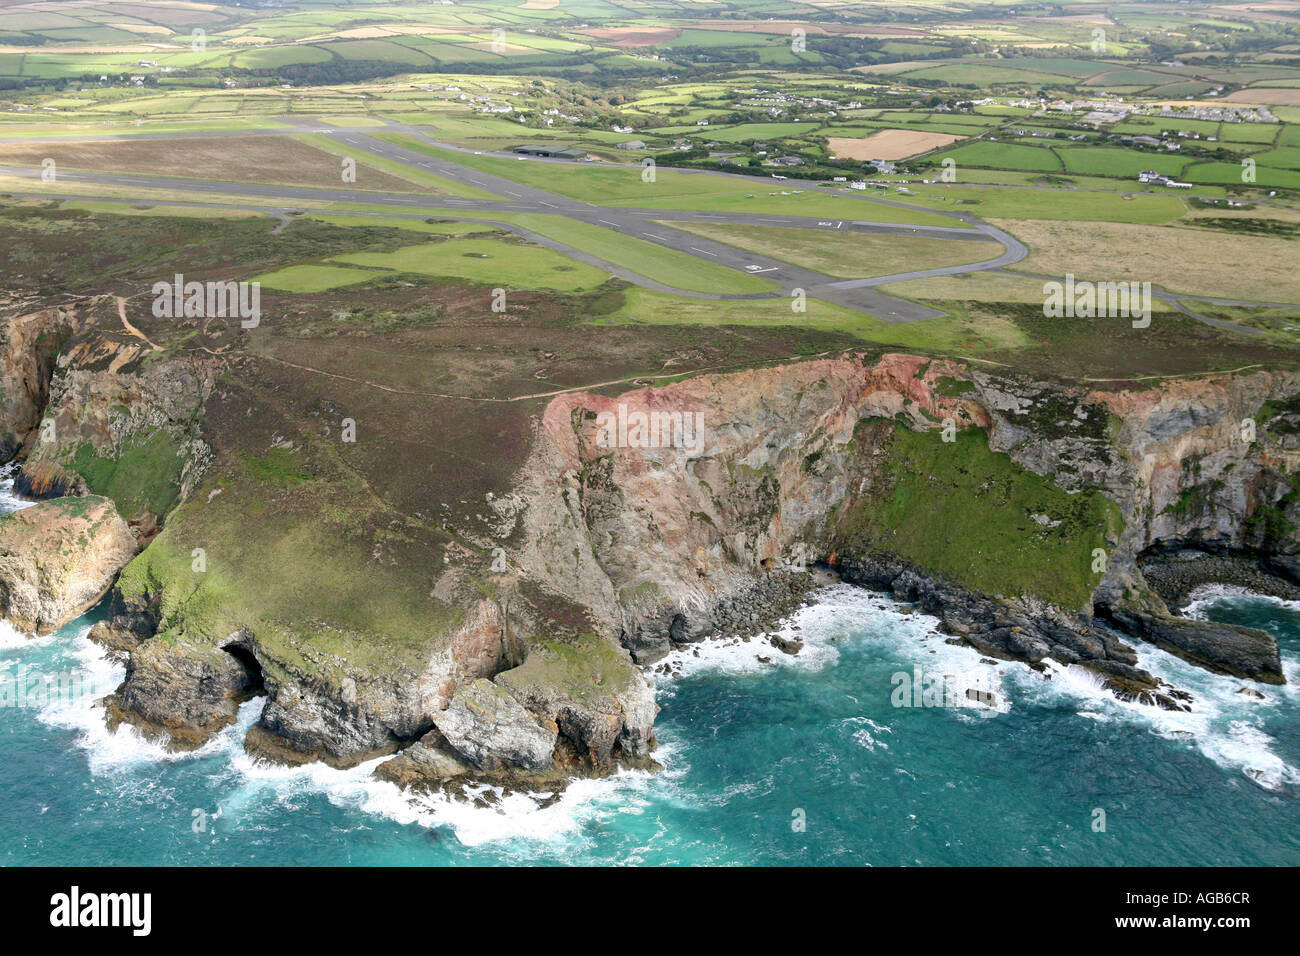 Aerial of Perranporth Airfield, Cornwall, UK - Stock Image